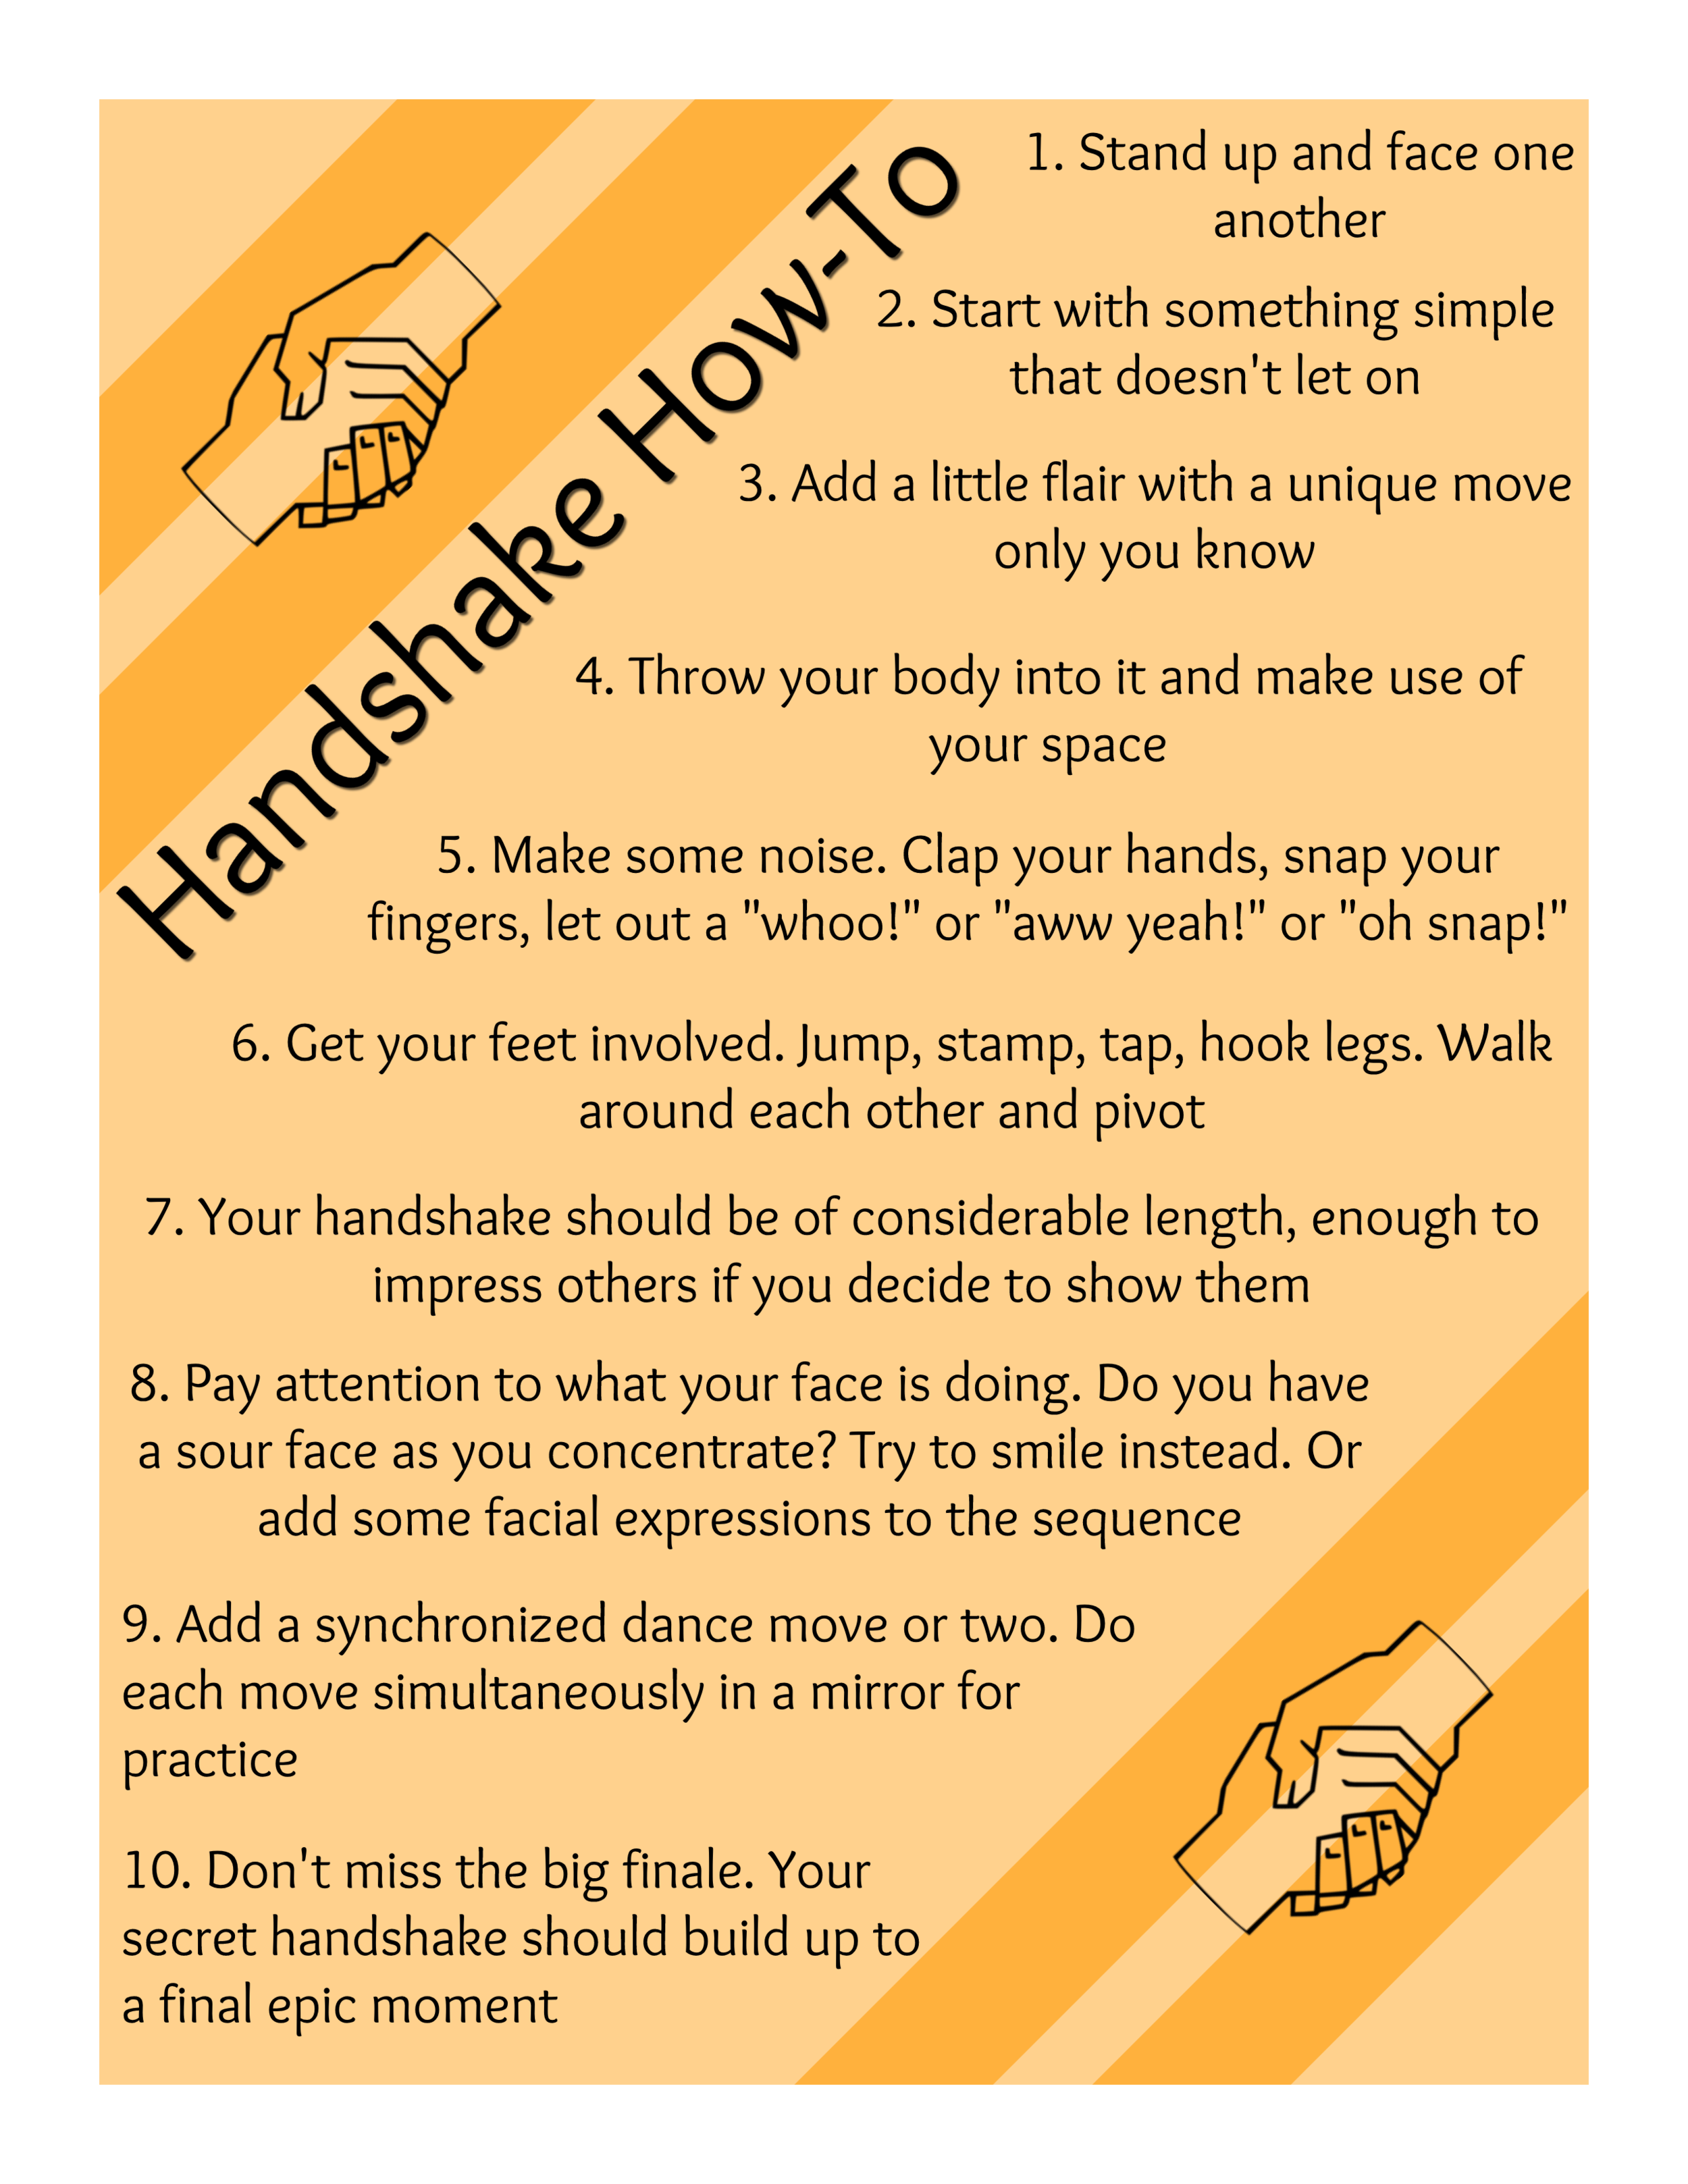 Handshake How To.png